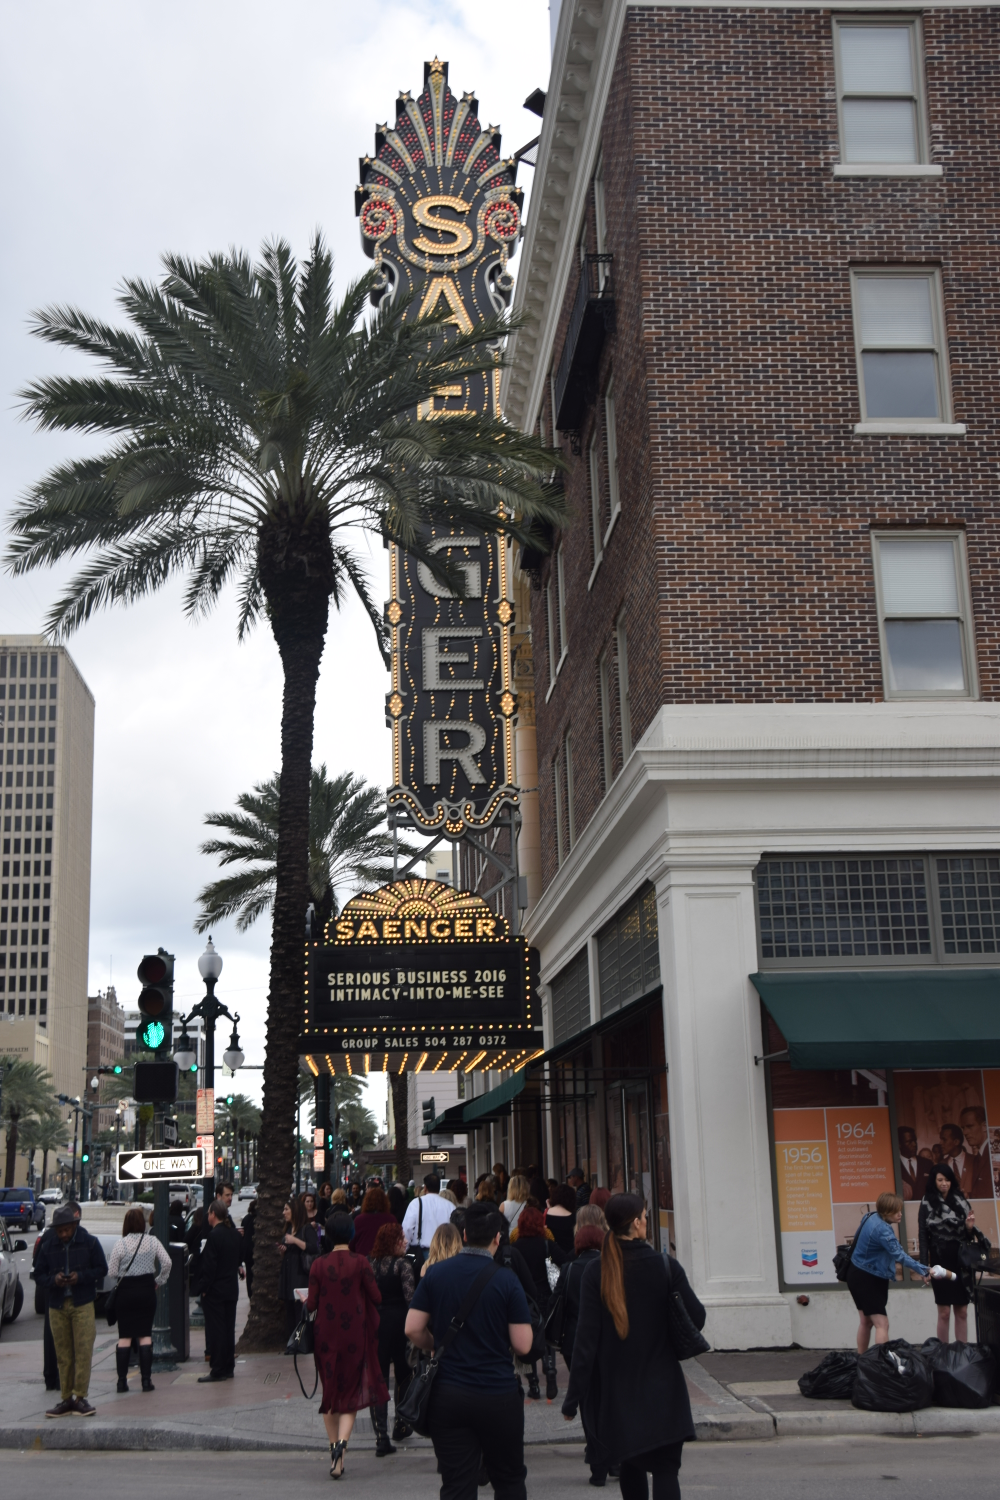 The historic Saenger Theater was the site for Serious Business 2016. (Photos by Jon Soble.)